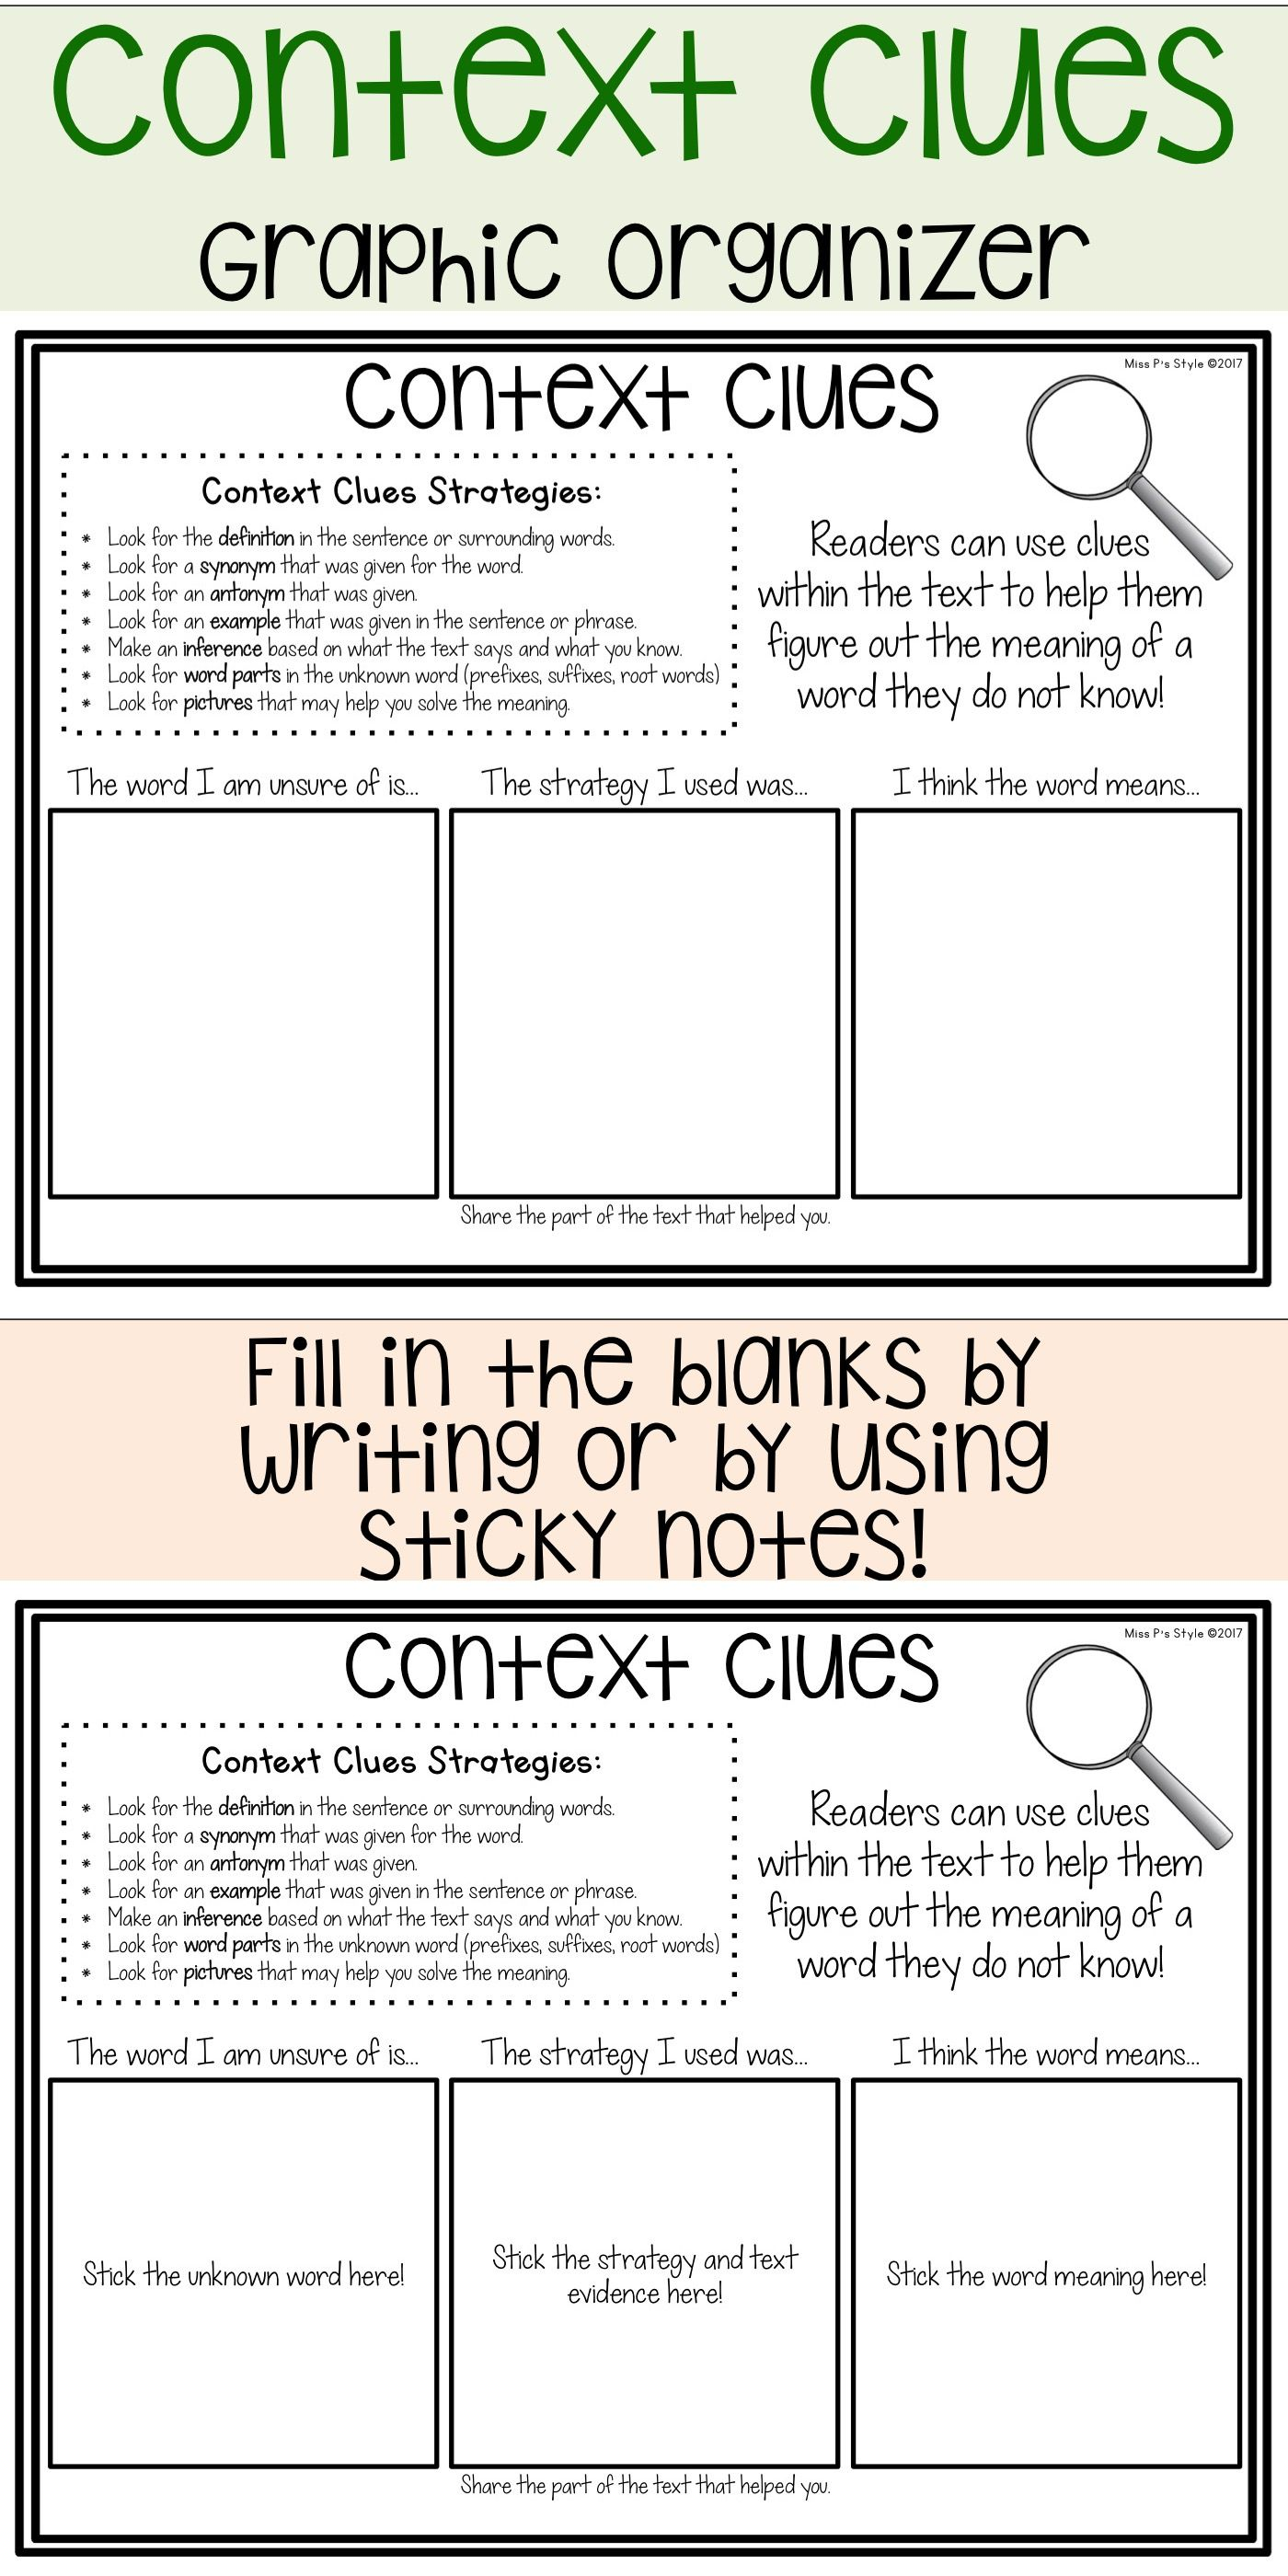 Reading Graphic Organizers Context Clues Context Clues Activities Graphic Organizers [ 2800 x 1400 Pixel ]